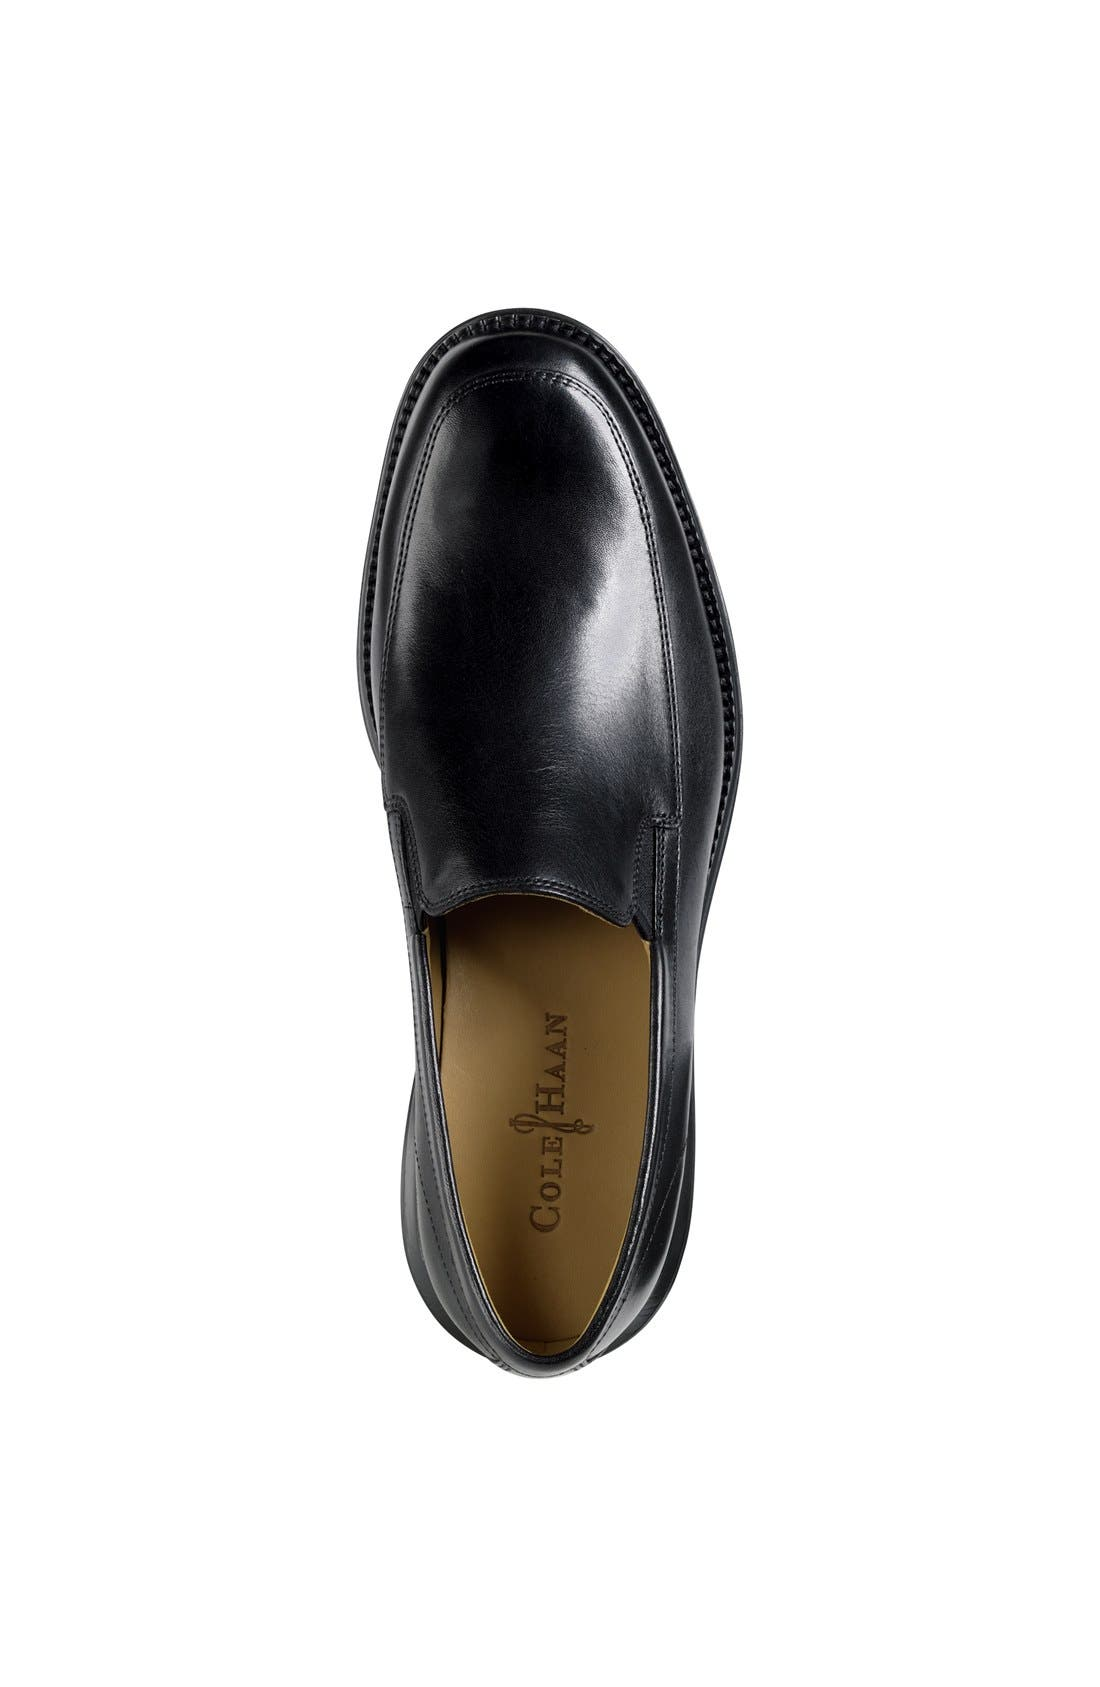 COLE HAAN,                             'LunarGrand' Apron Toe Loafer,                             Alternate thumbnail 4, color,                             001